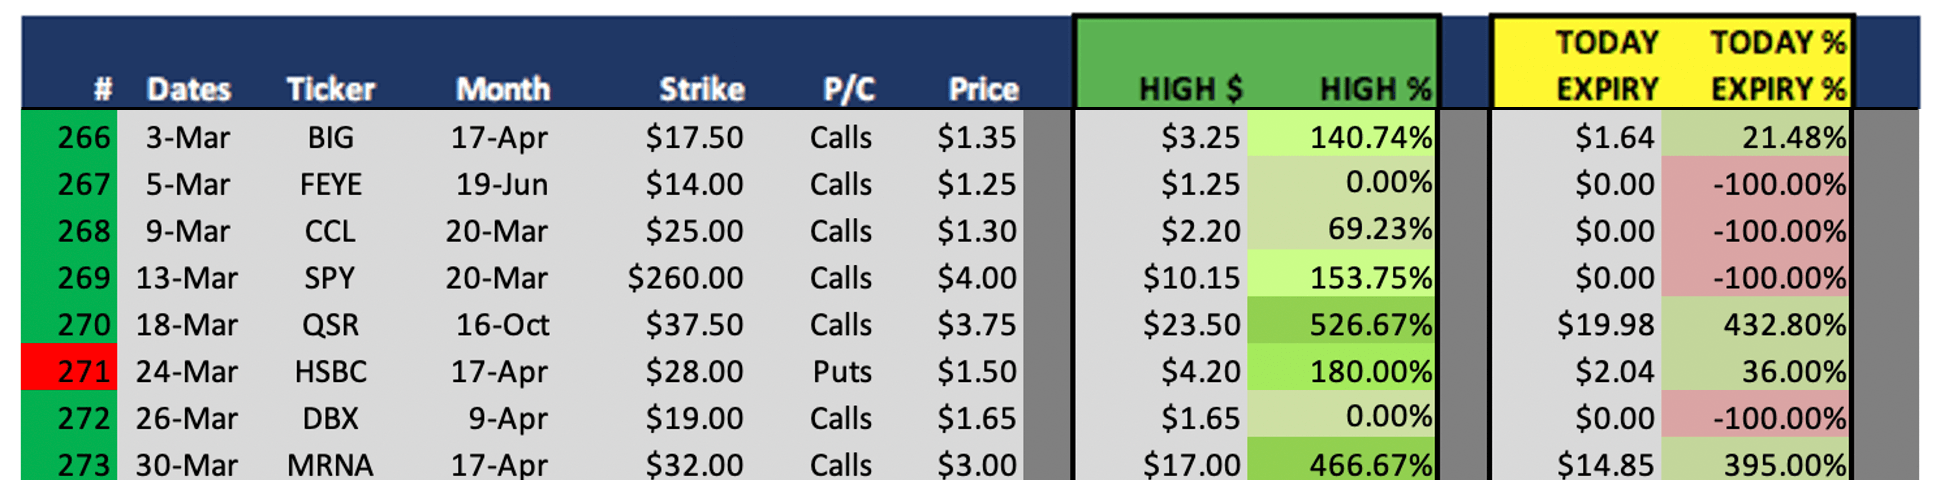 Best Options Trading Signals Winning Picks Weekly Results on March 30 266 thru 273